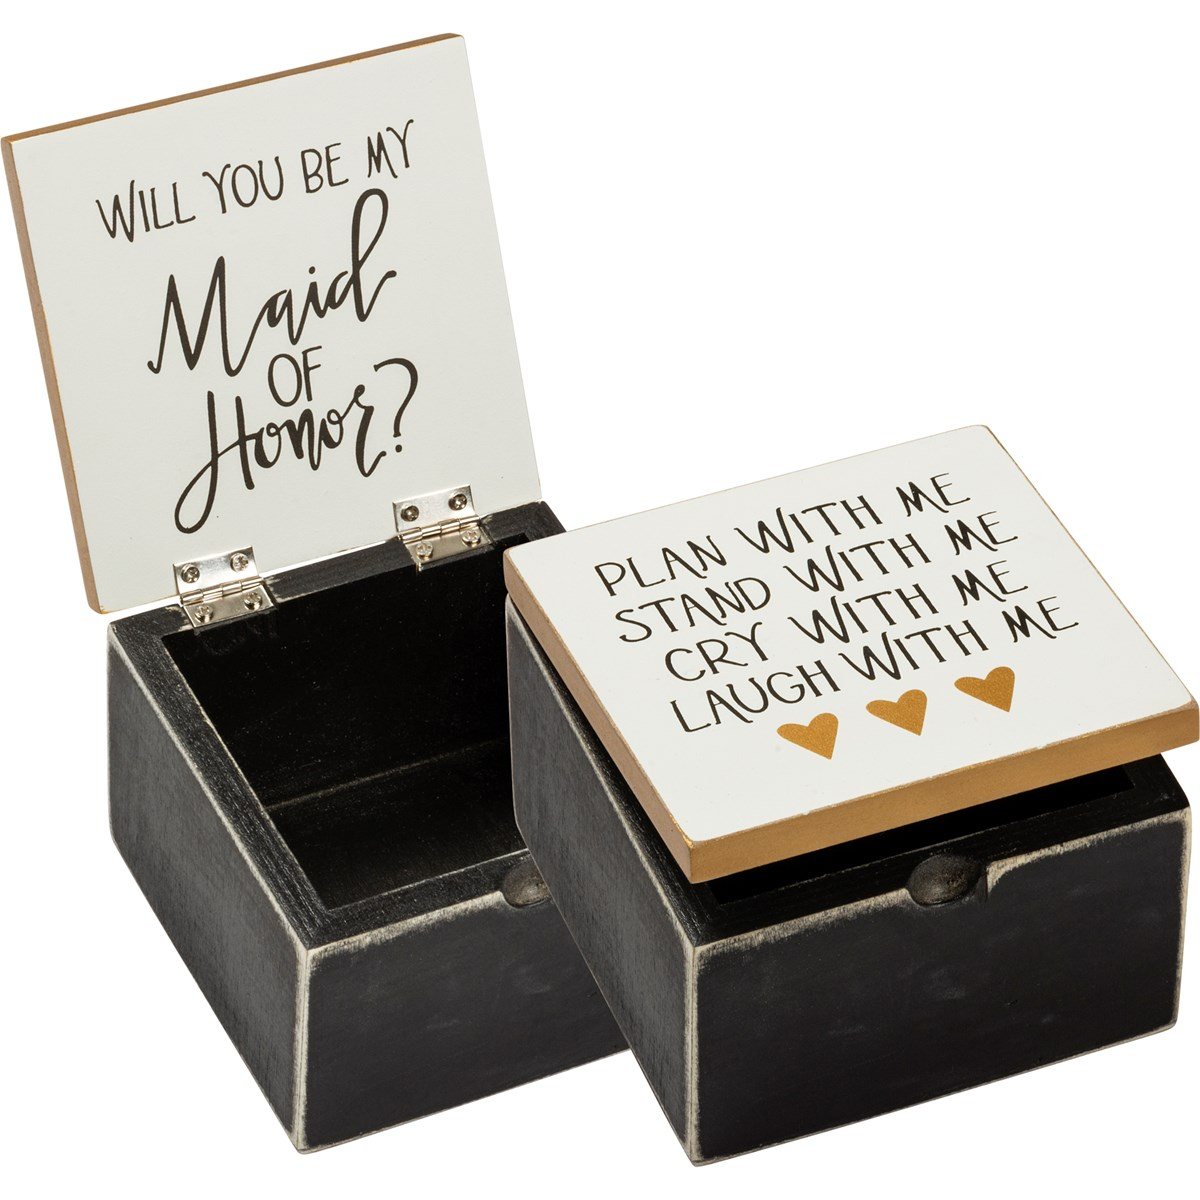 "Hinged Box - Plan With Me Be My Maid Of Honor - 4"" x 4"" x 2.75"" - Wood, Metal"